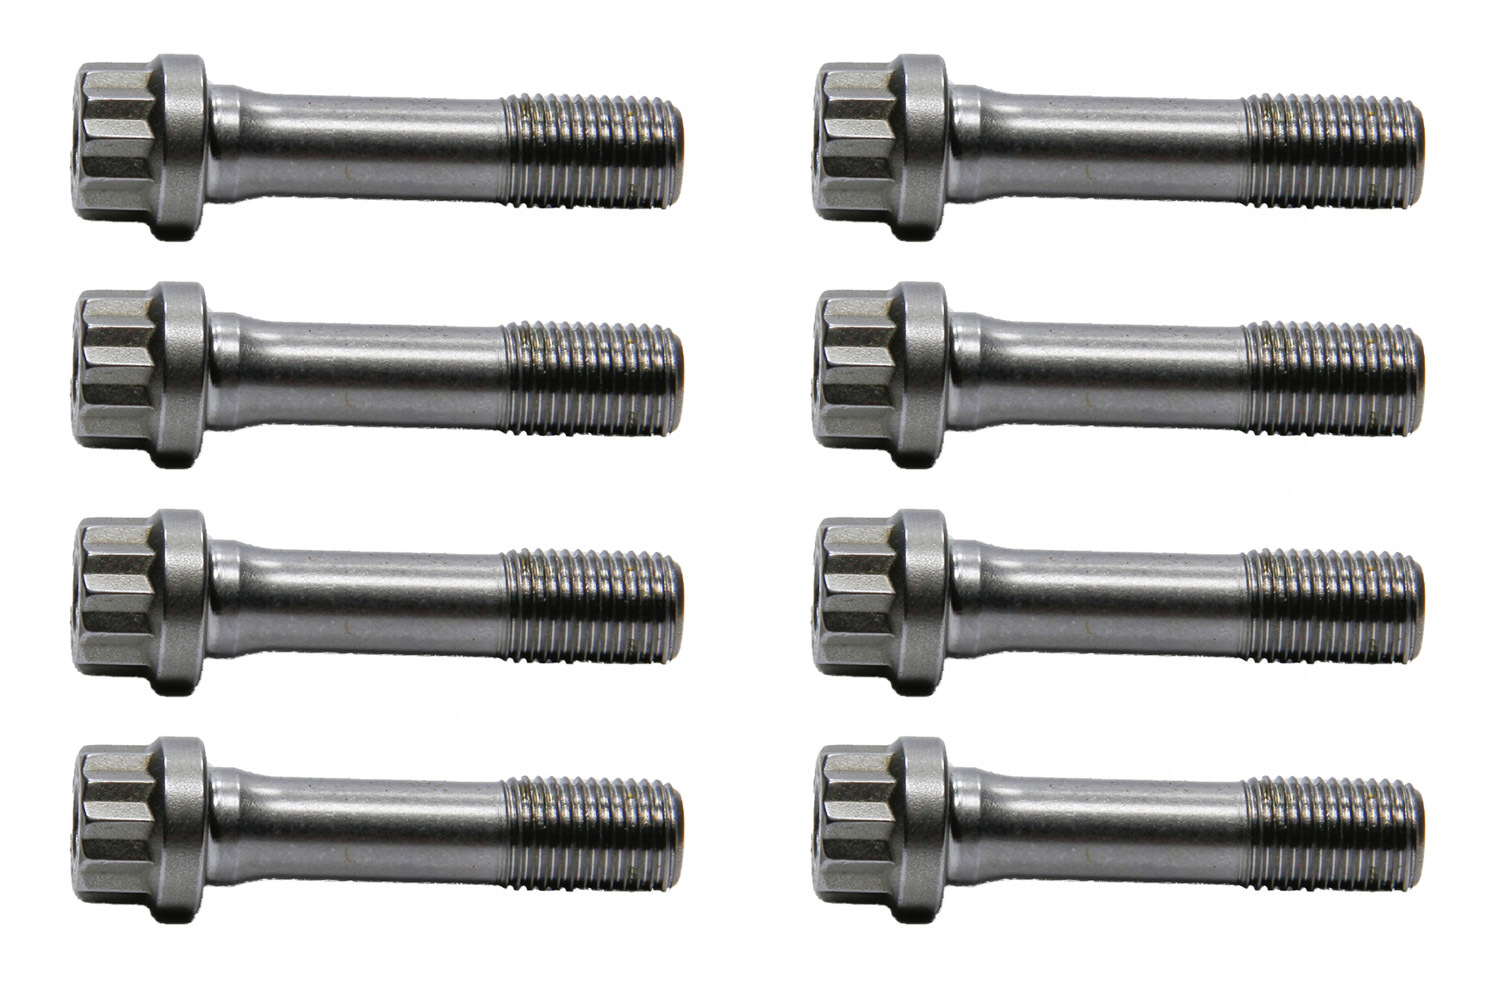 EAG20060 Eagle ARP 2000 Series 3/8 Rod Bolts 1.500 8pk